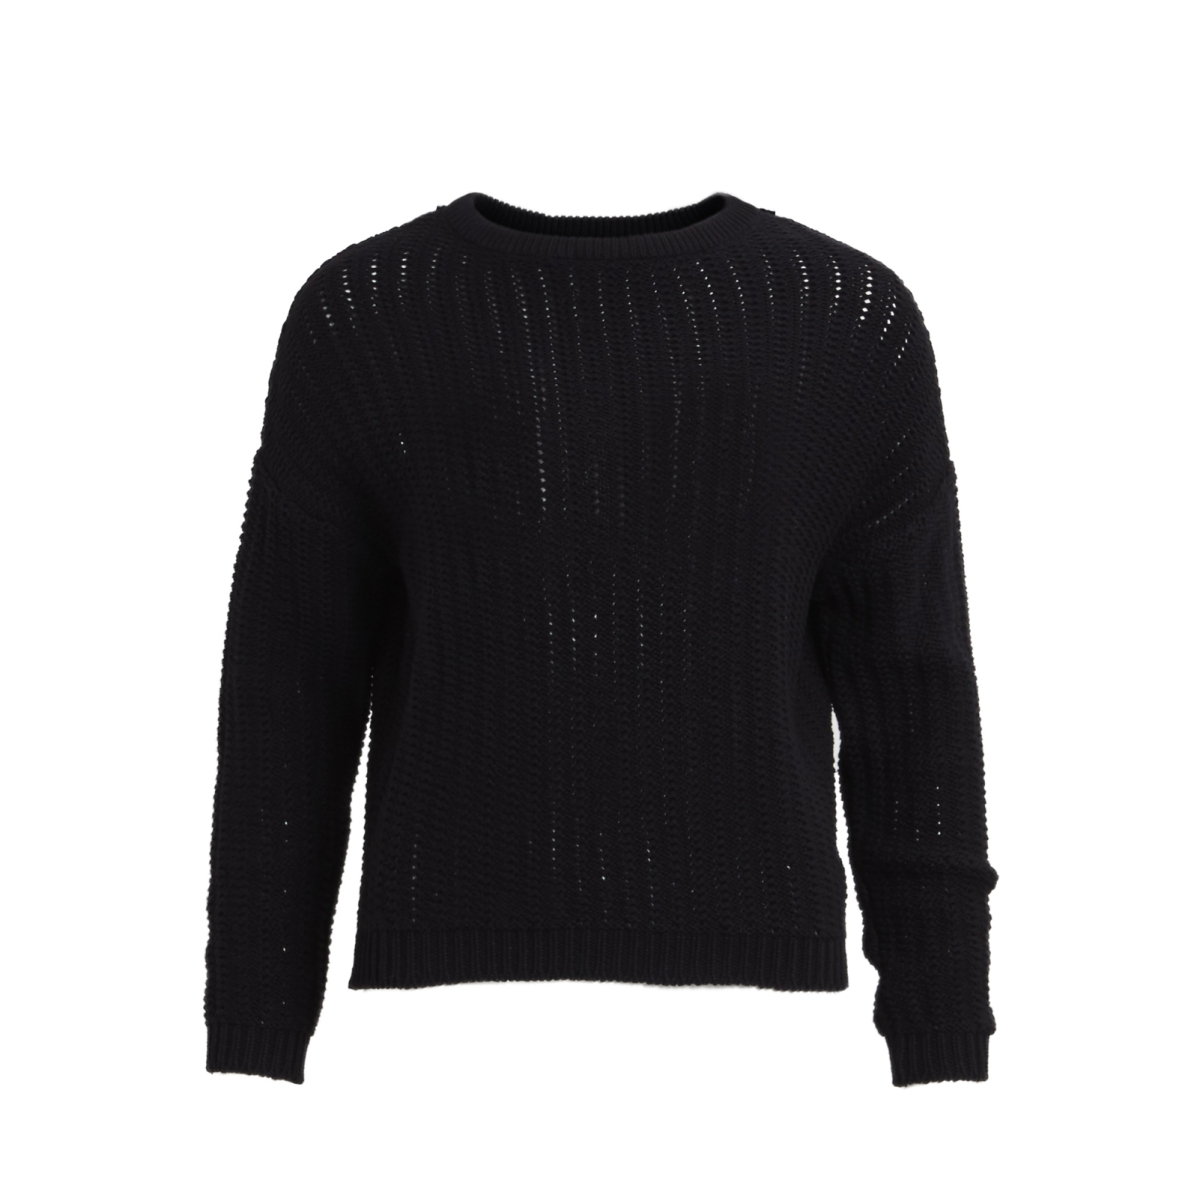 objnew color l/s knit pullover .i 9 23025148 object trui black